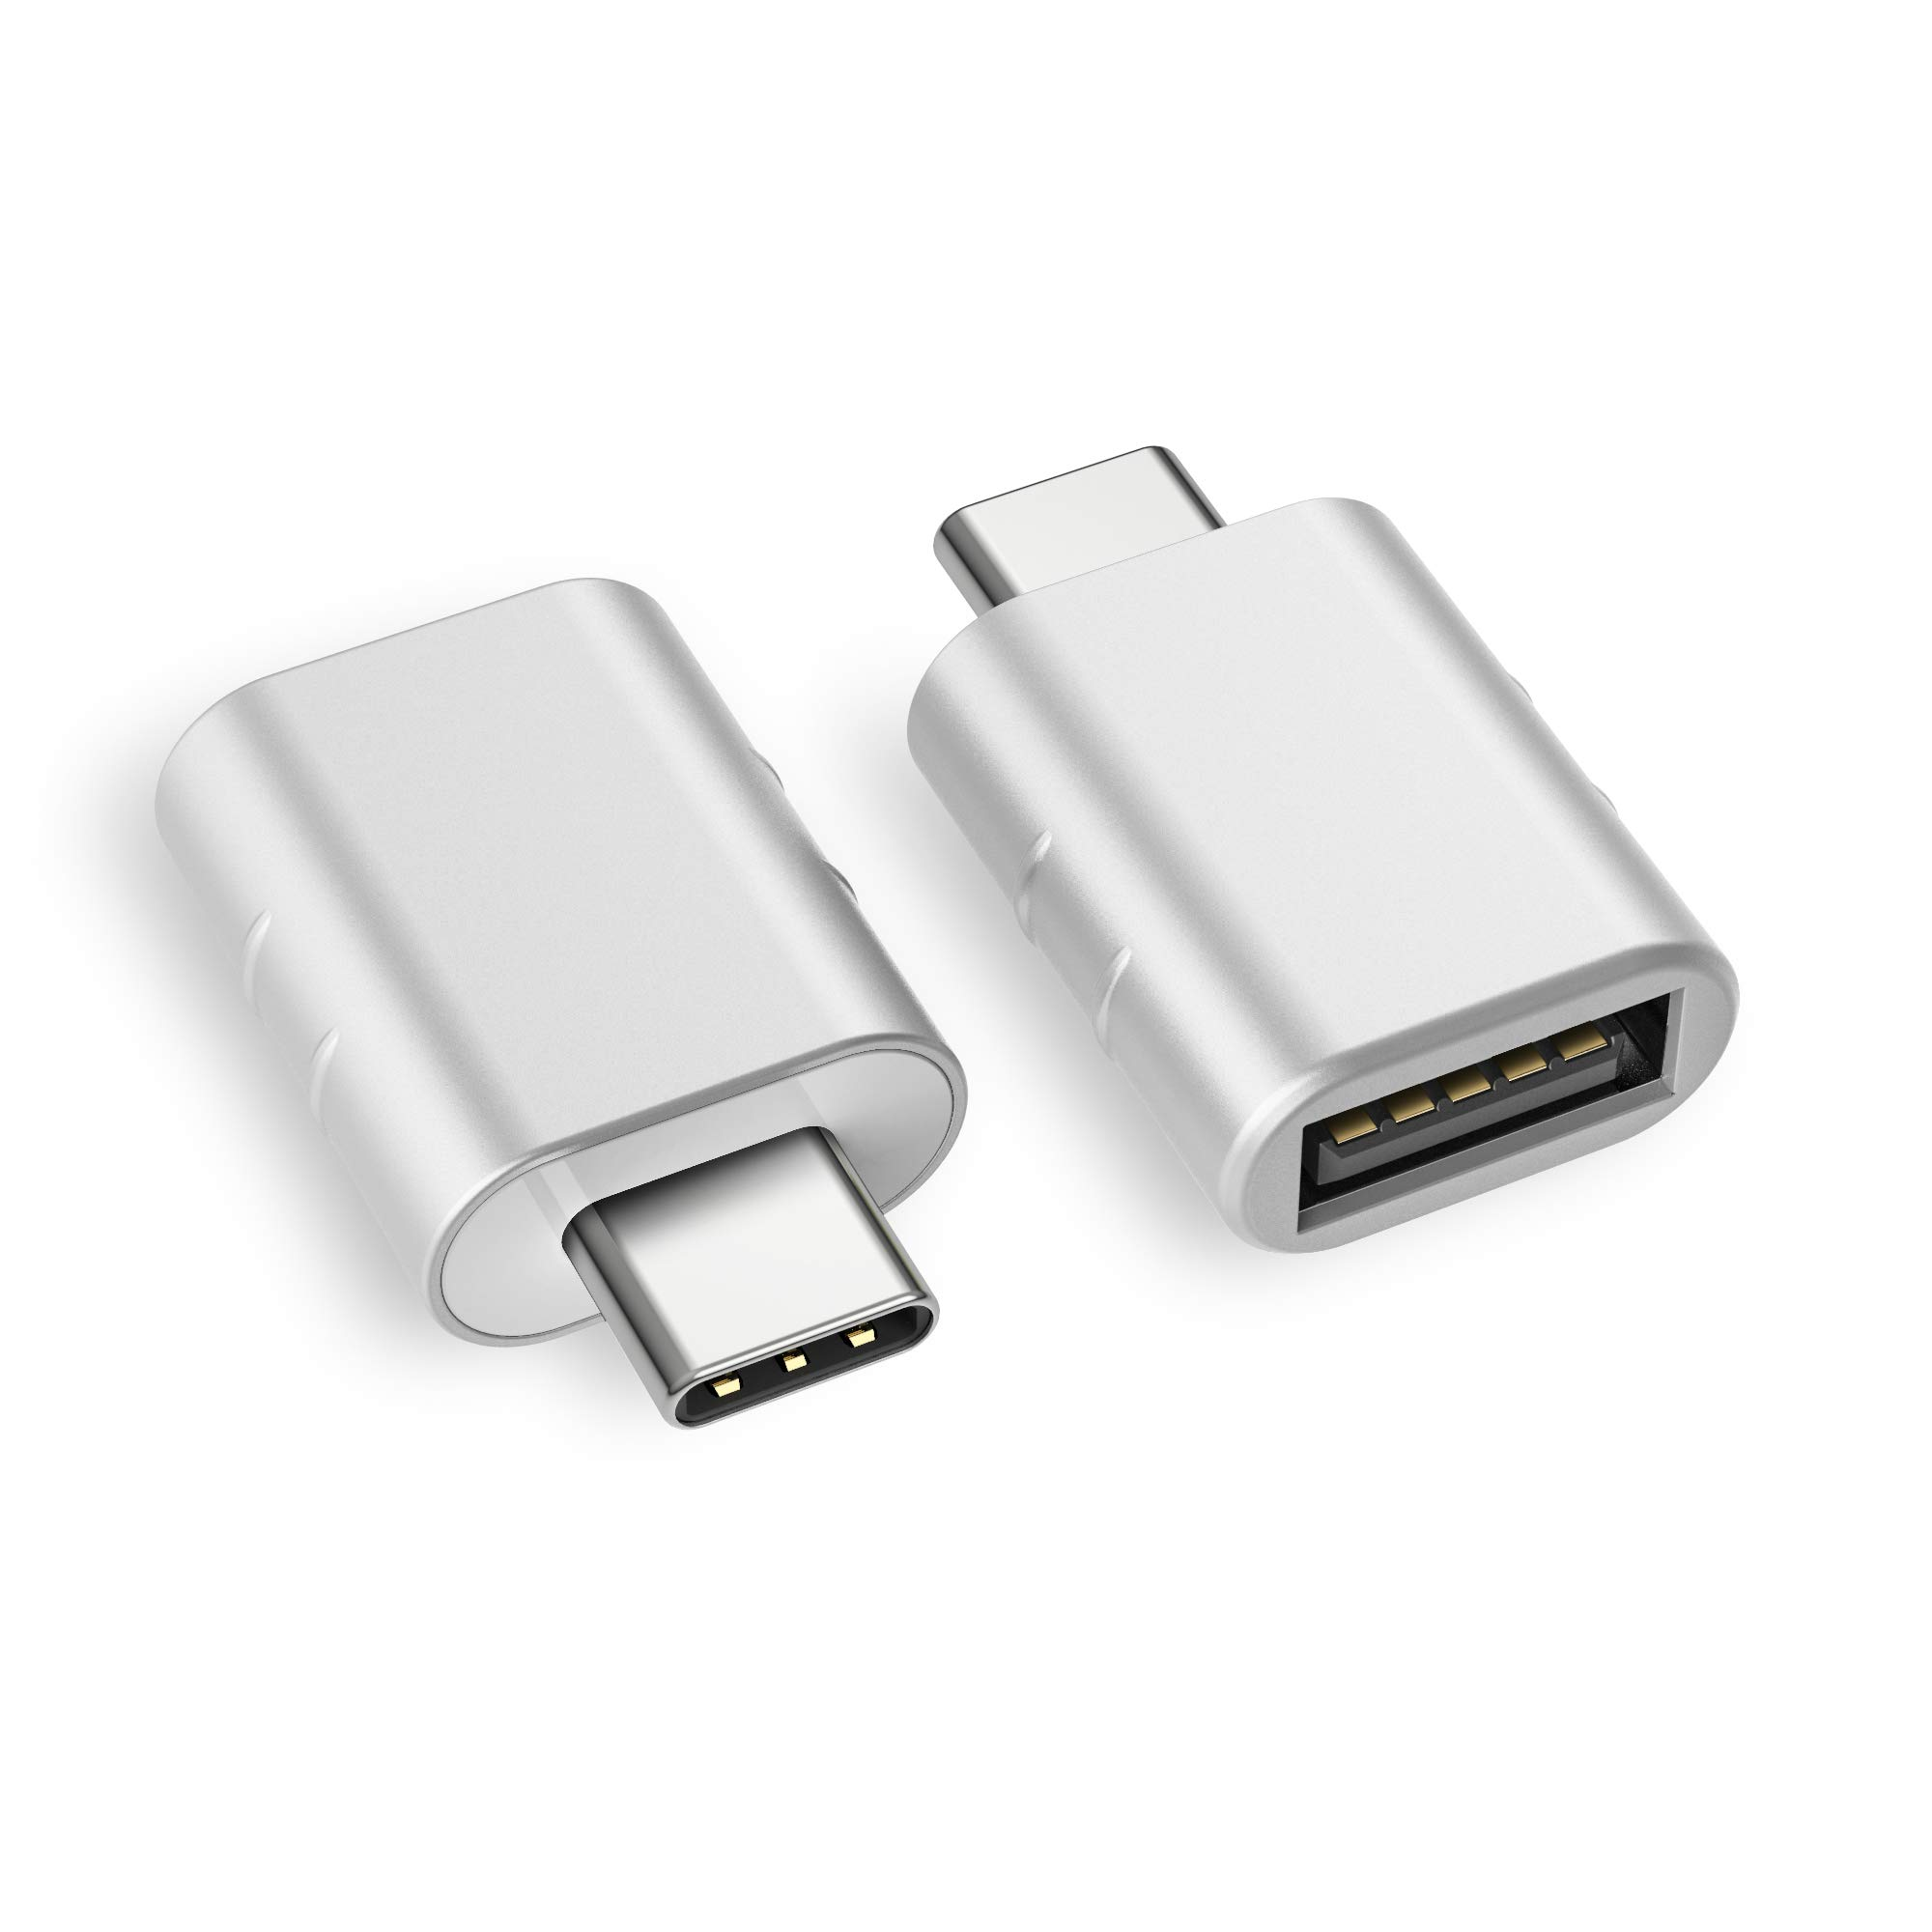 Syntech USB C to USB Adapter (2 Pack), Thunderbolt 3 to USB 3.0 Adapter Compatible with MacBook Pro 2019 and Before, MacBook Air 2019/2018, Dell XPS, ChromeBook and More Type C Devices, Gold